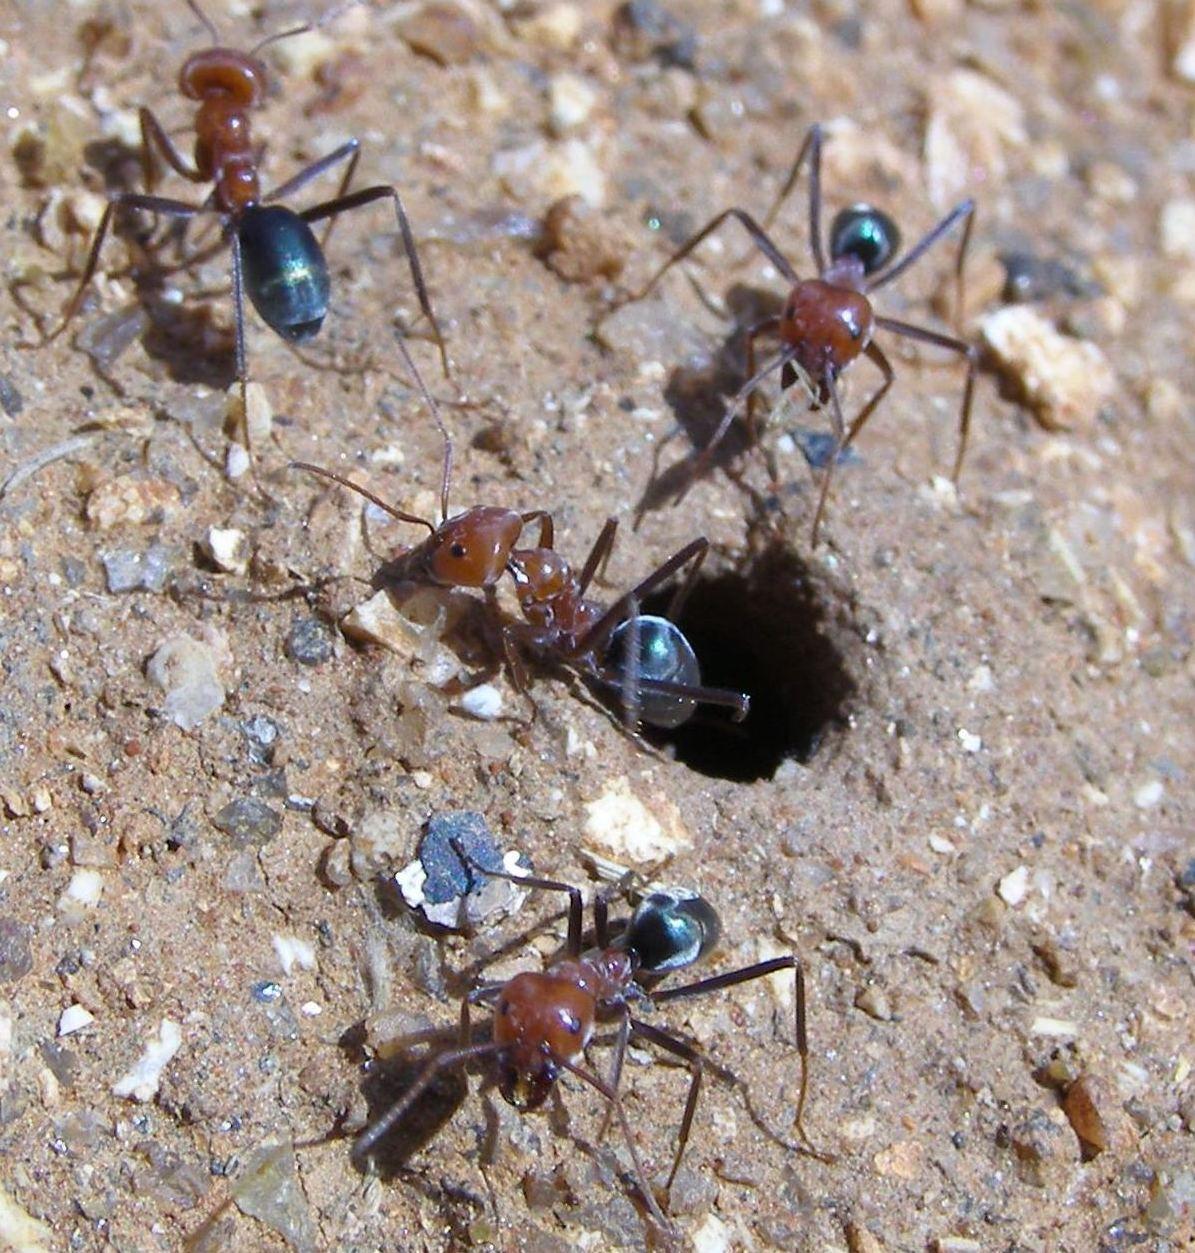 Black ants coming out of a hole in the ground